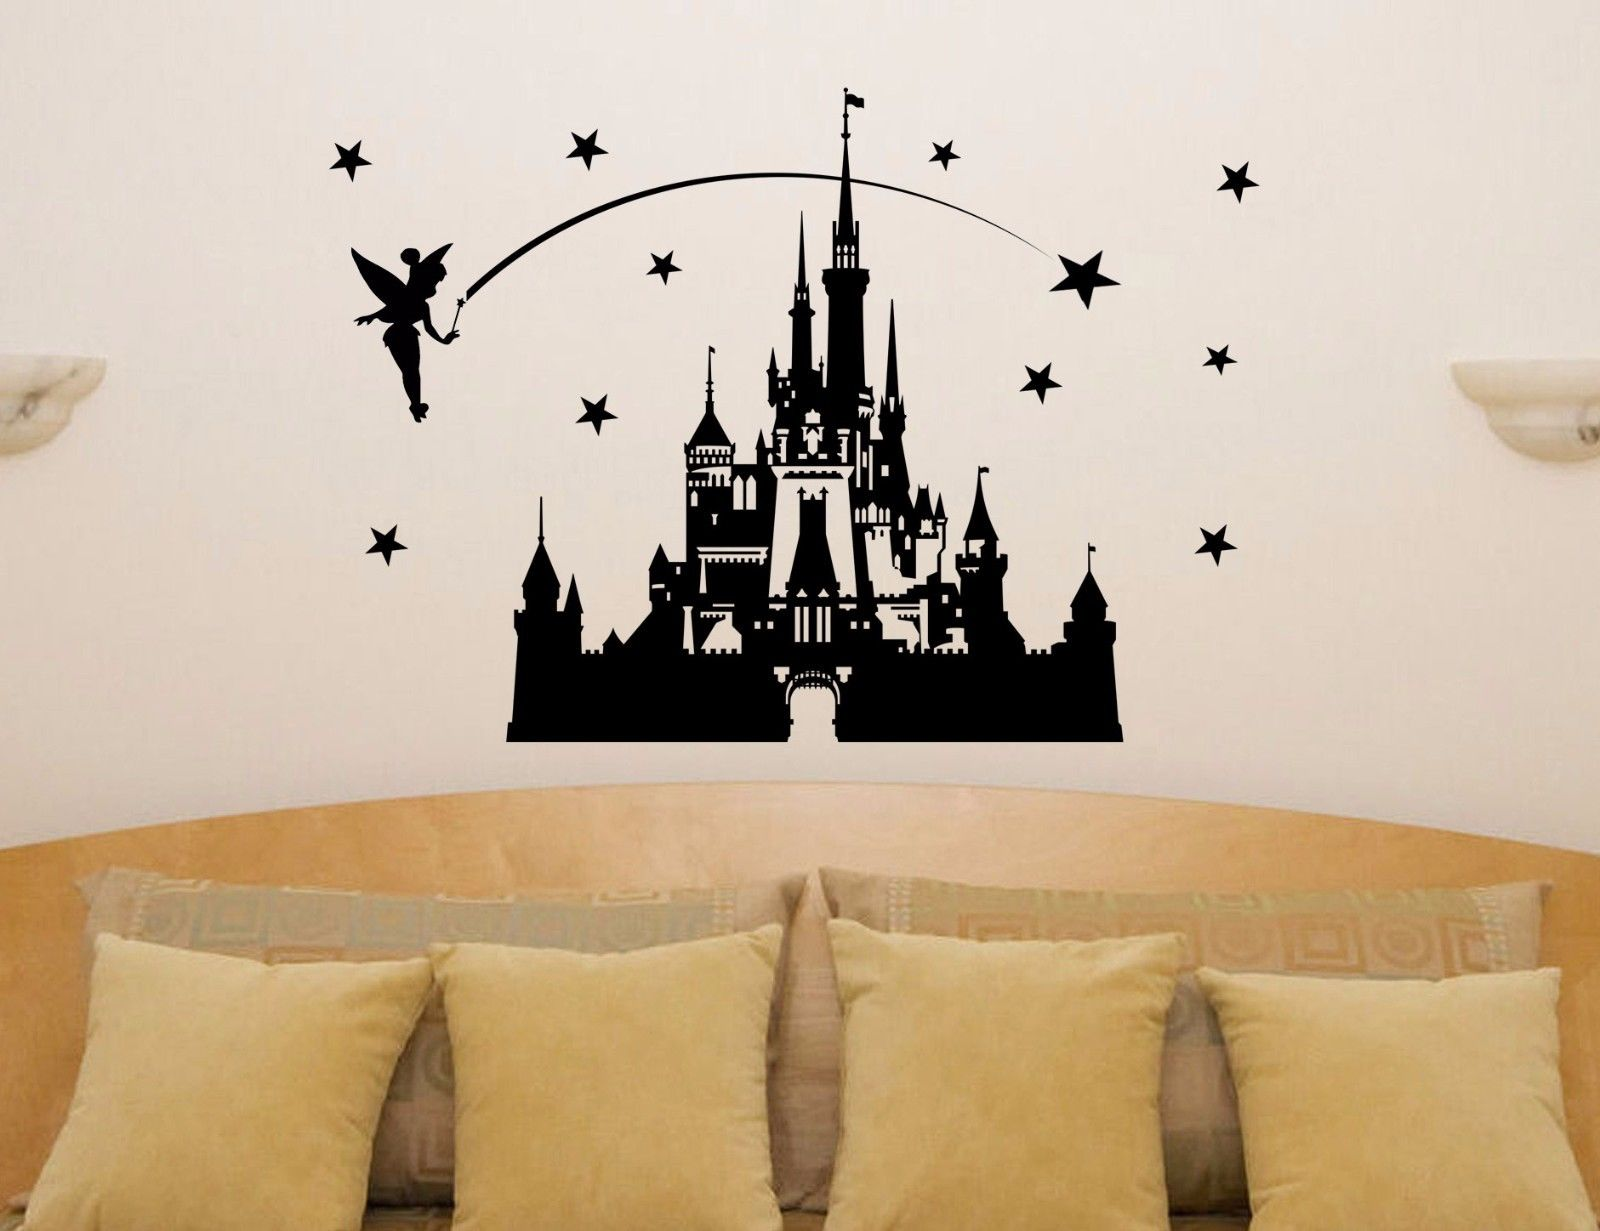 Carton Castle Fairytale Princess Tinkerbell Wall Art Decal - Heminredning